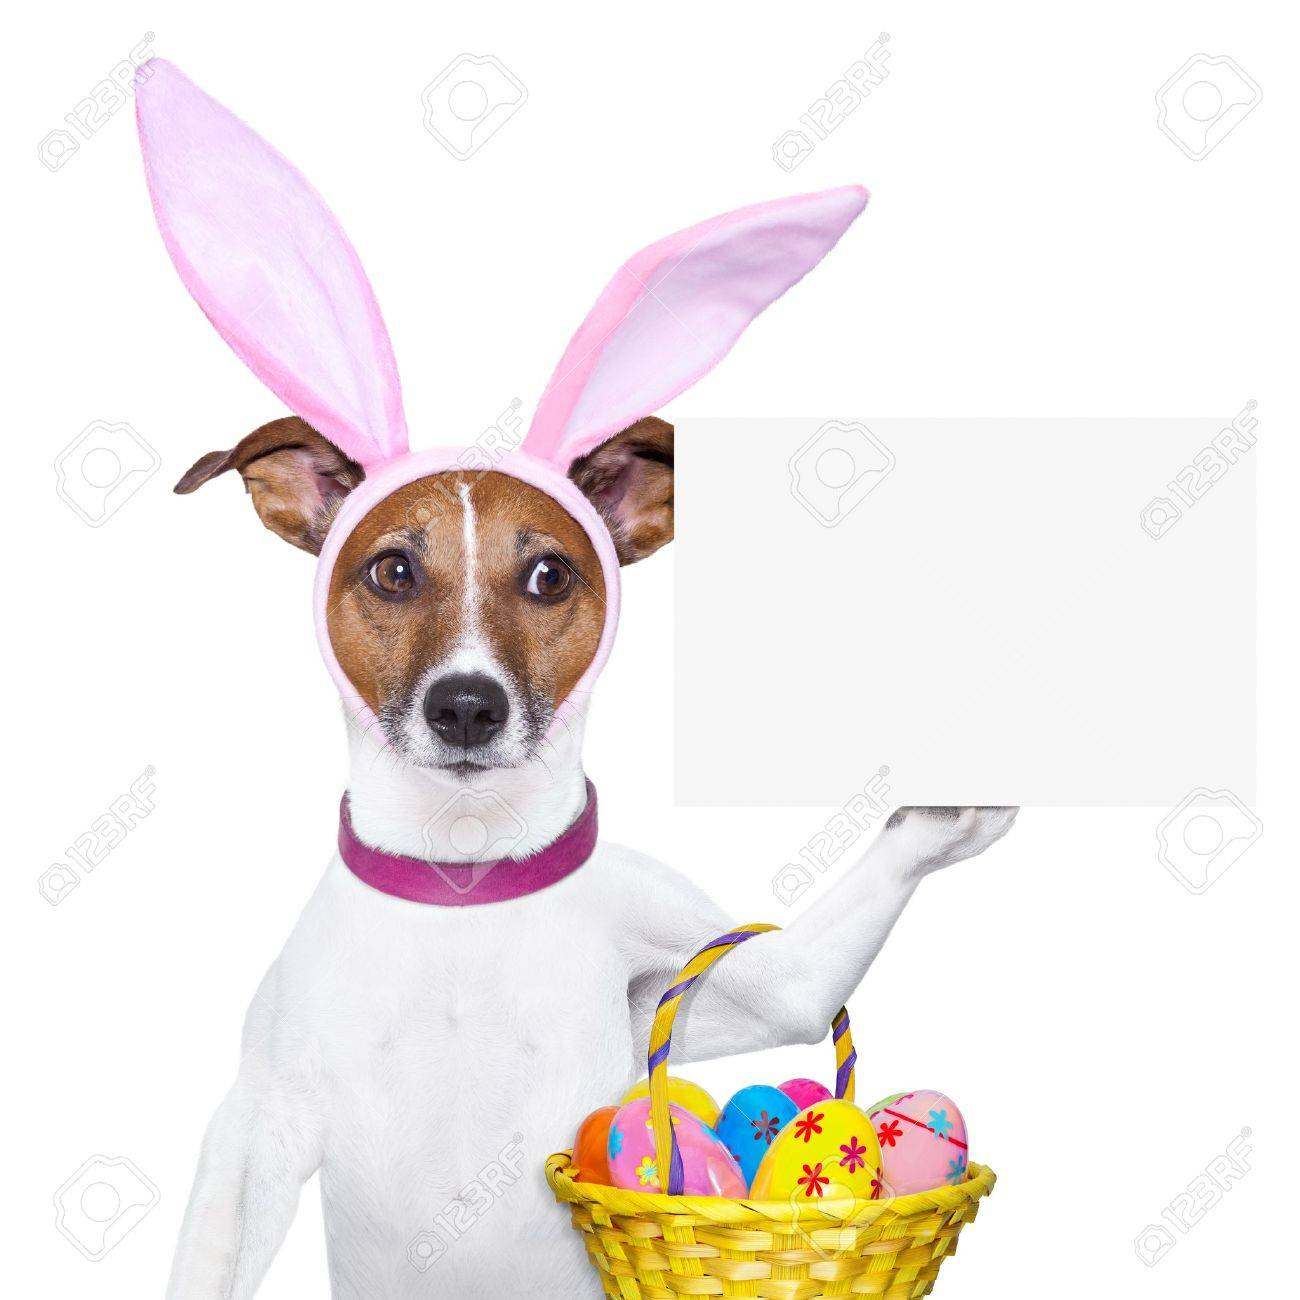 dog dressed up as bunny with easter basket and a banner Stock Photo - 18284712